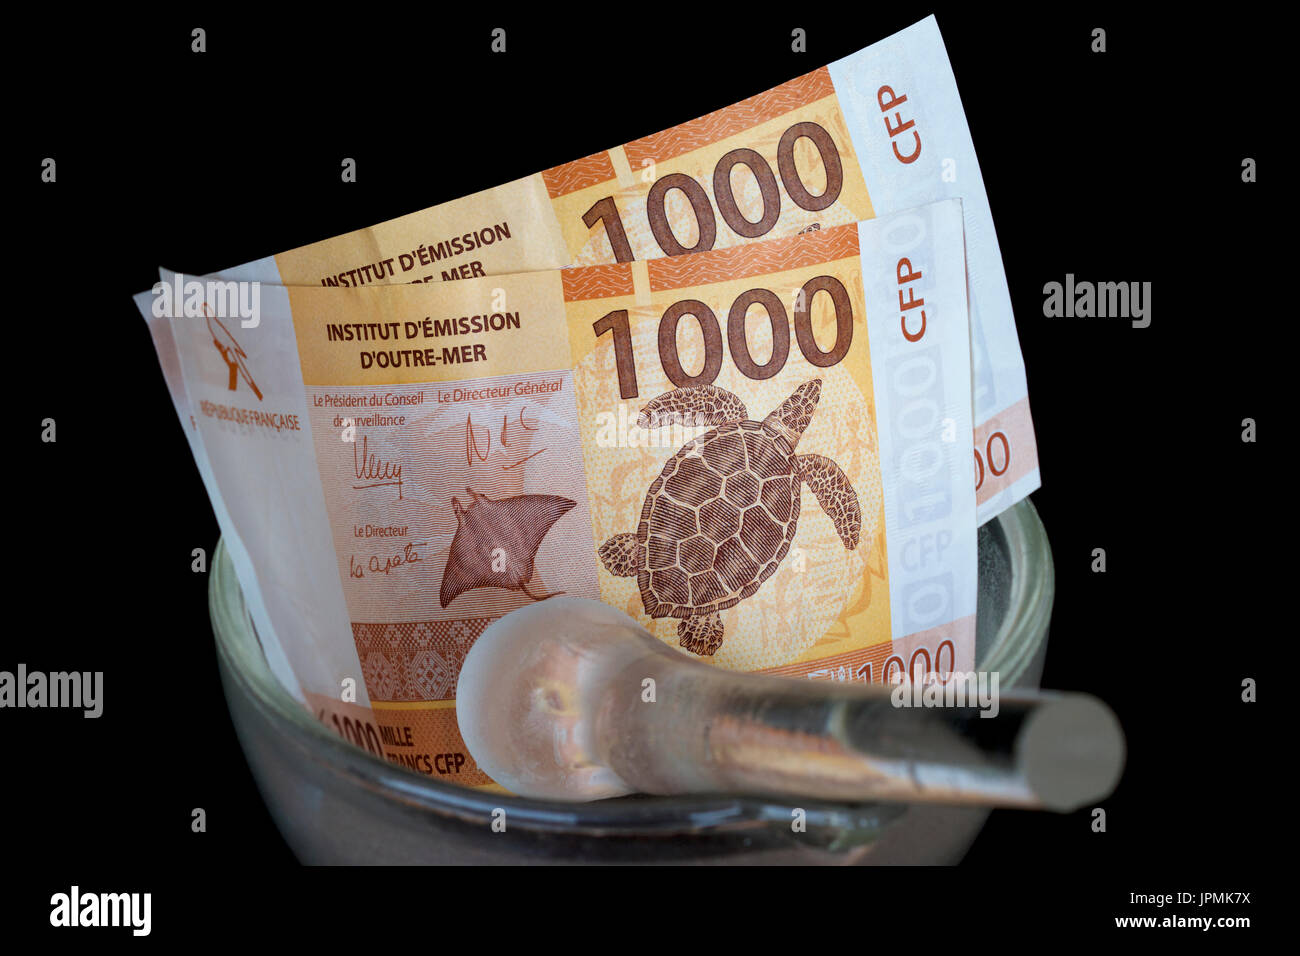 French Polynesian francs in a glass mortar